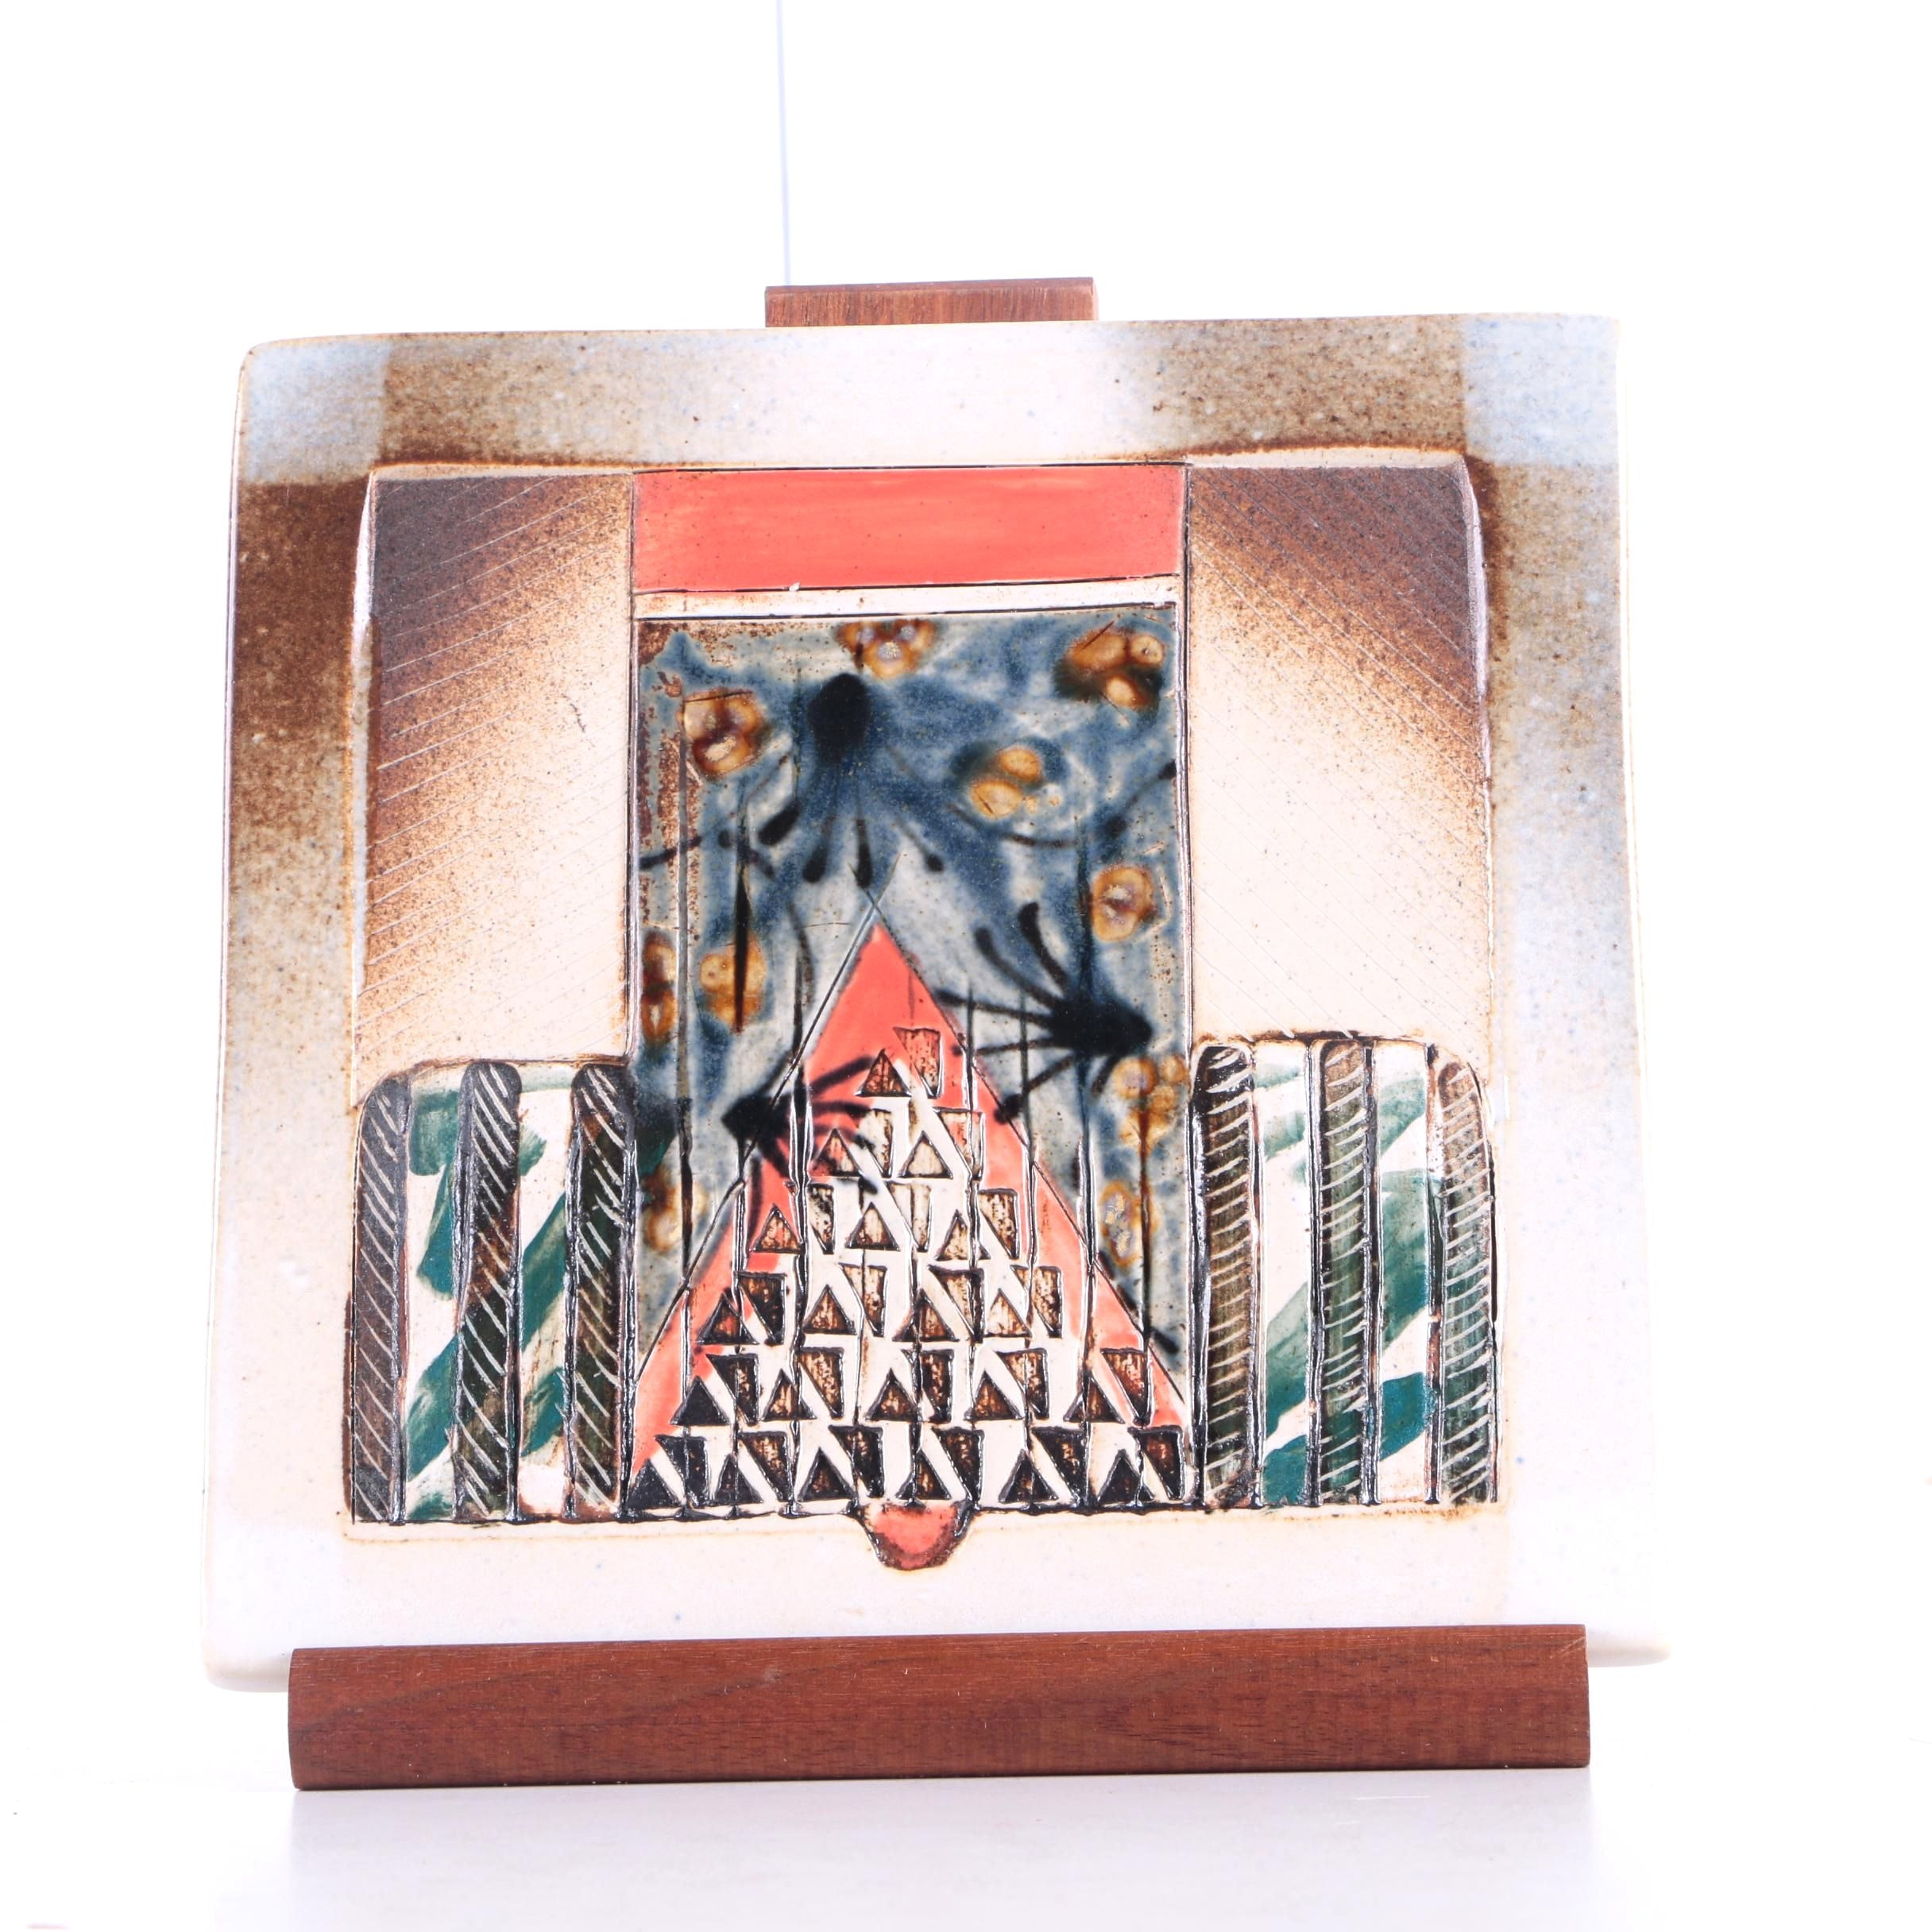 Hand Painted Ceramic Tile with Wooden Stand